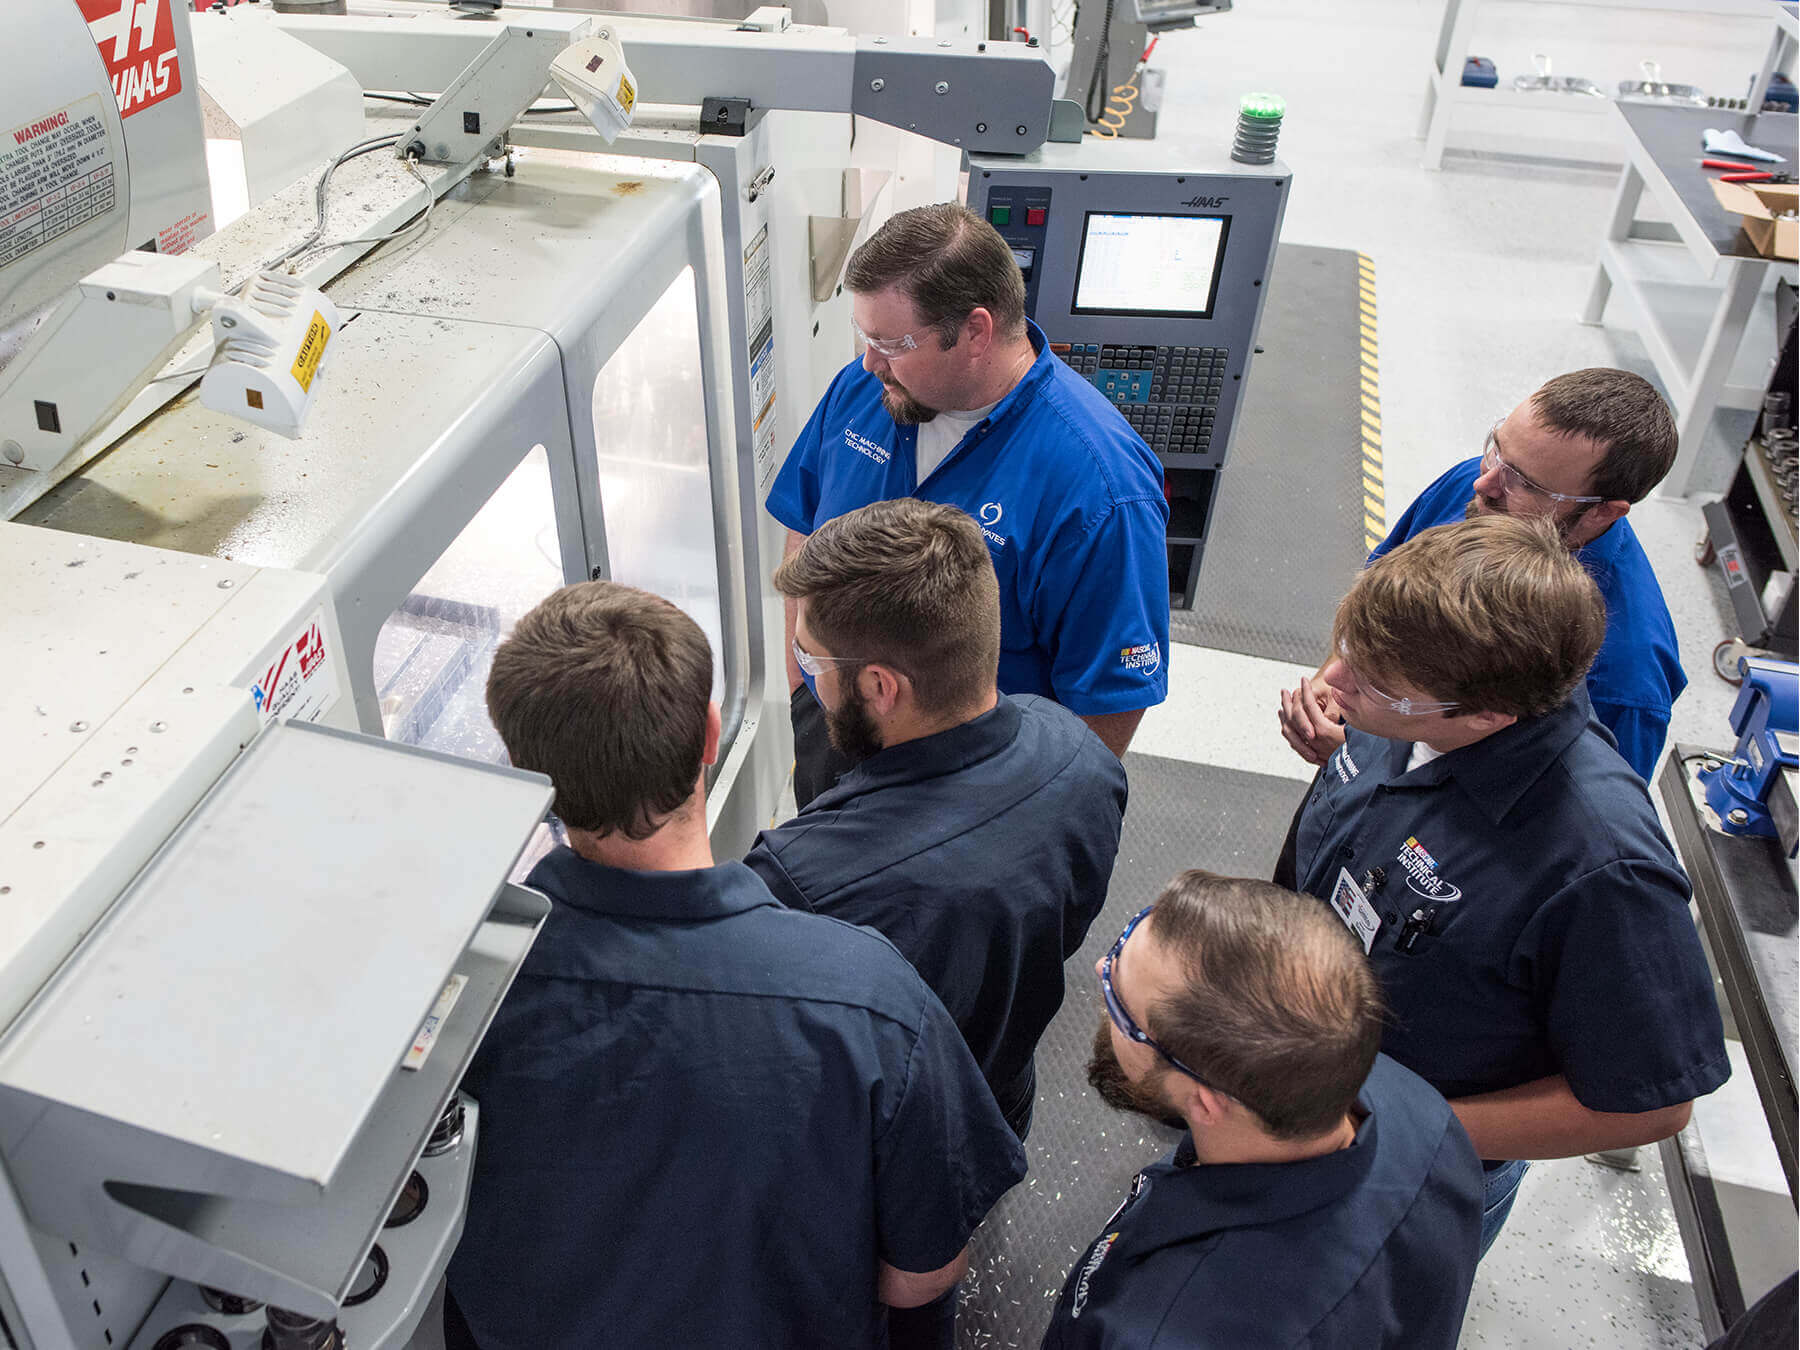 Overhead photo of Instructor and students looking into the CNC machine